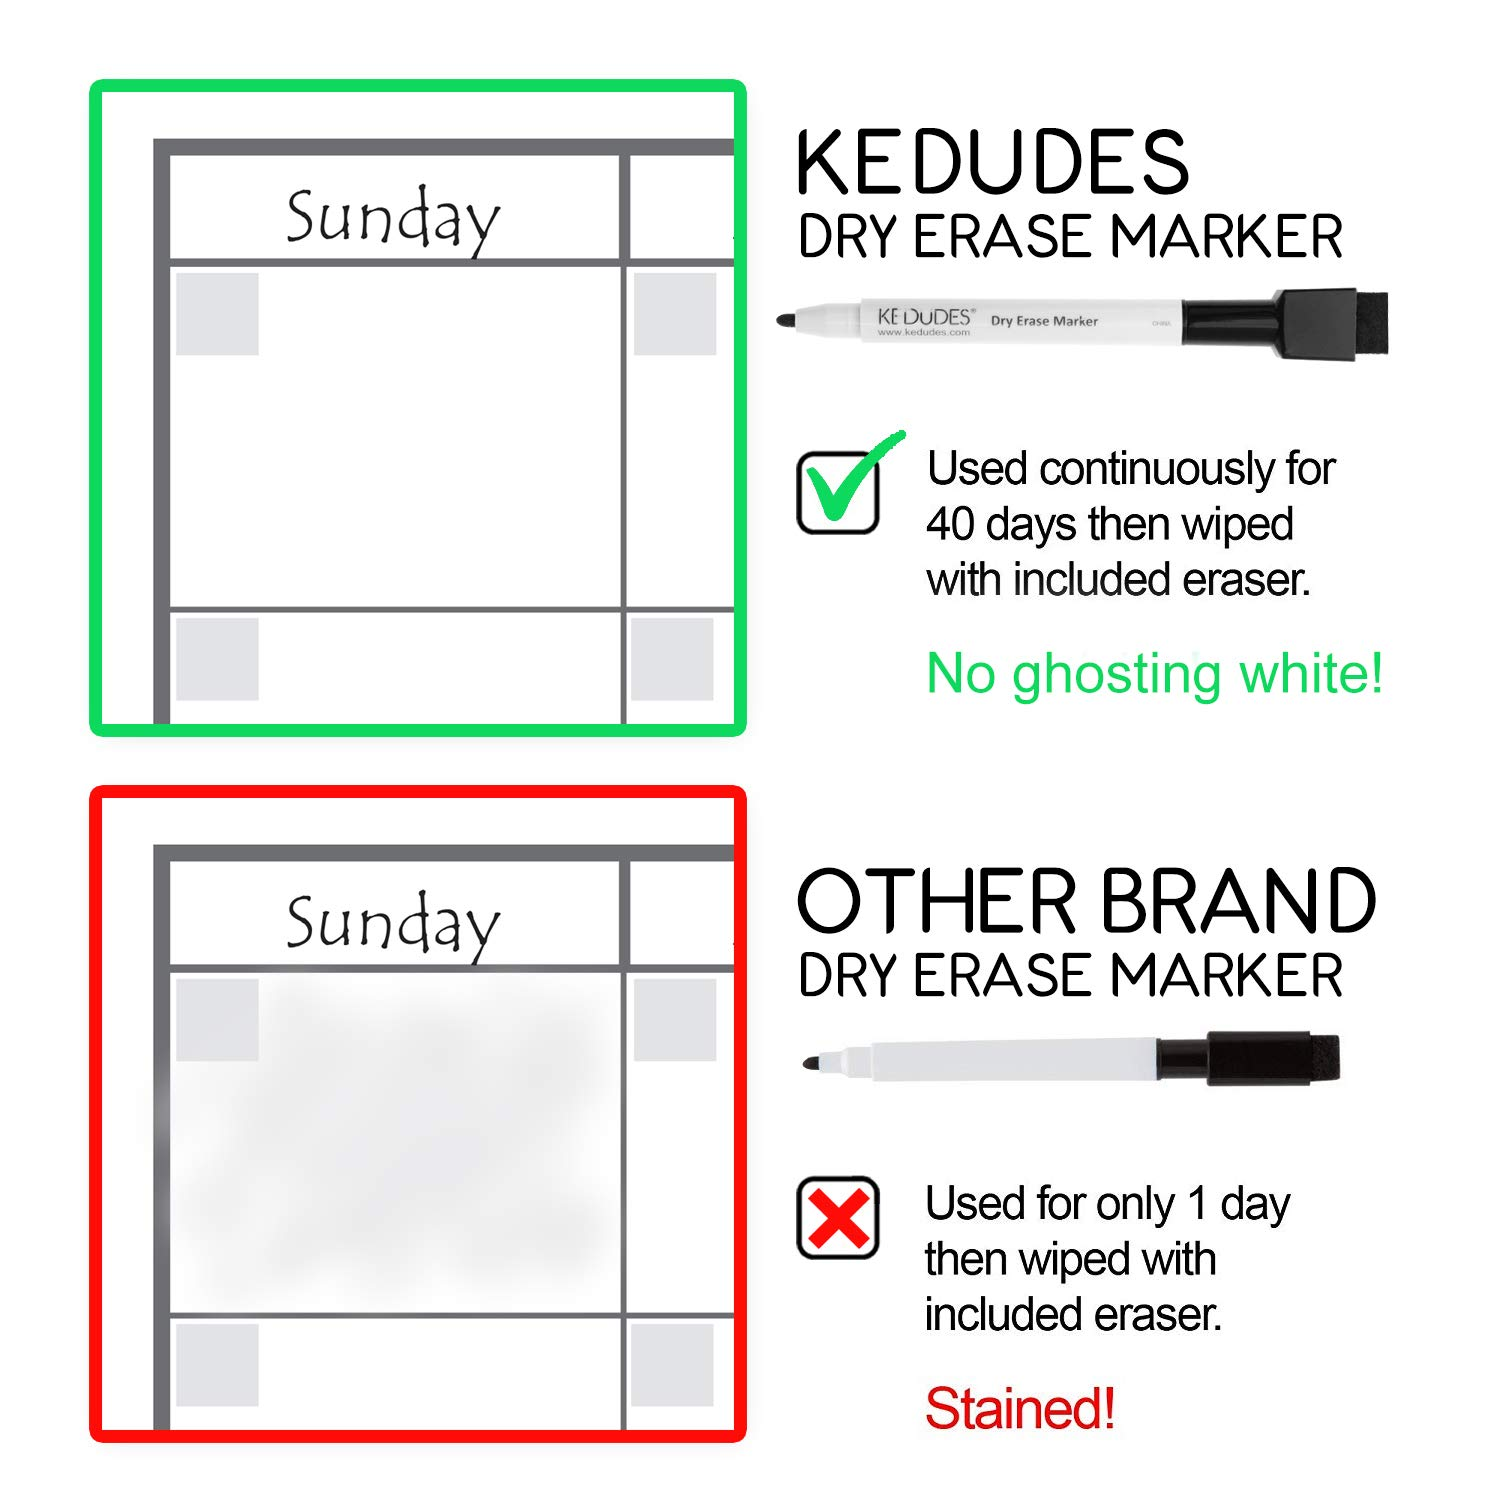 Premium Magnetic Dry Erase Whiteboard Sheet 17'' x 11'' Great for Fridge! Includes a Set of 6 Markers (60876668980) by kedudes